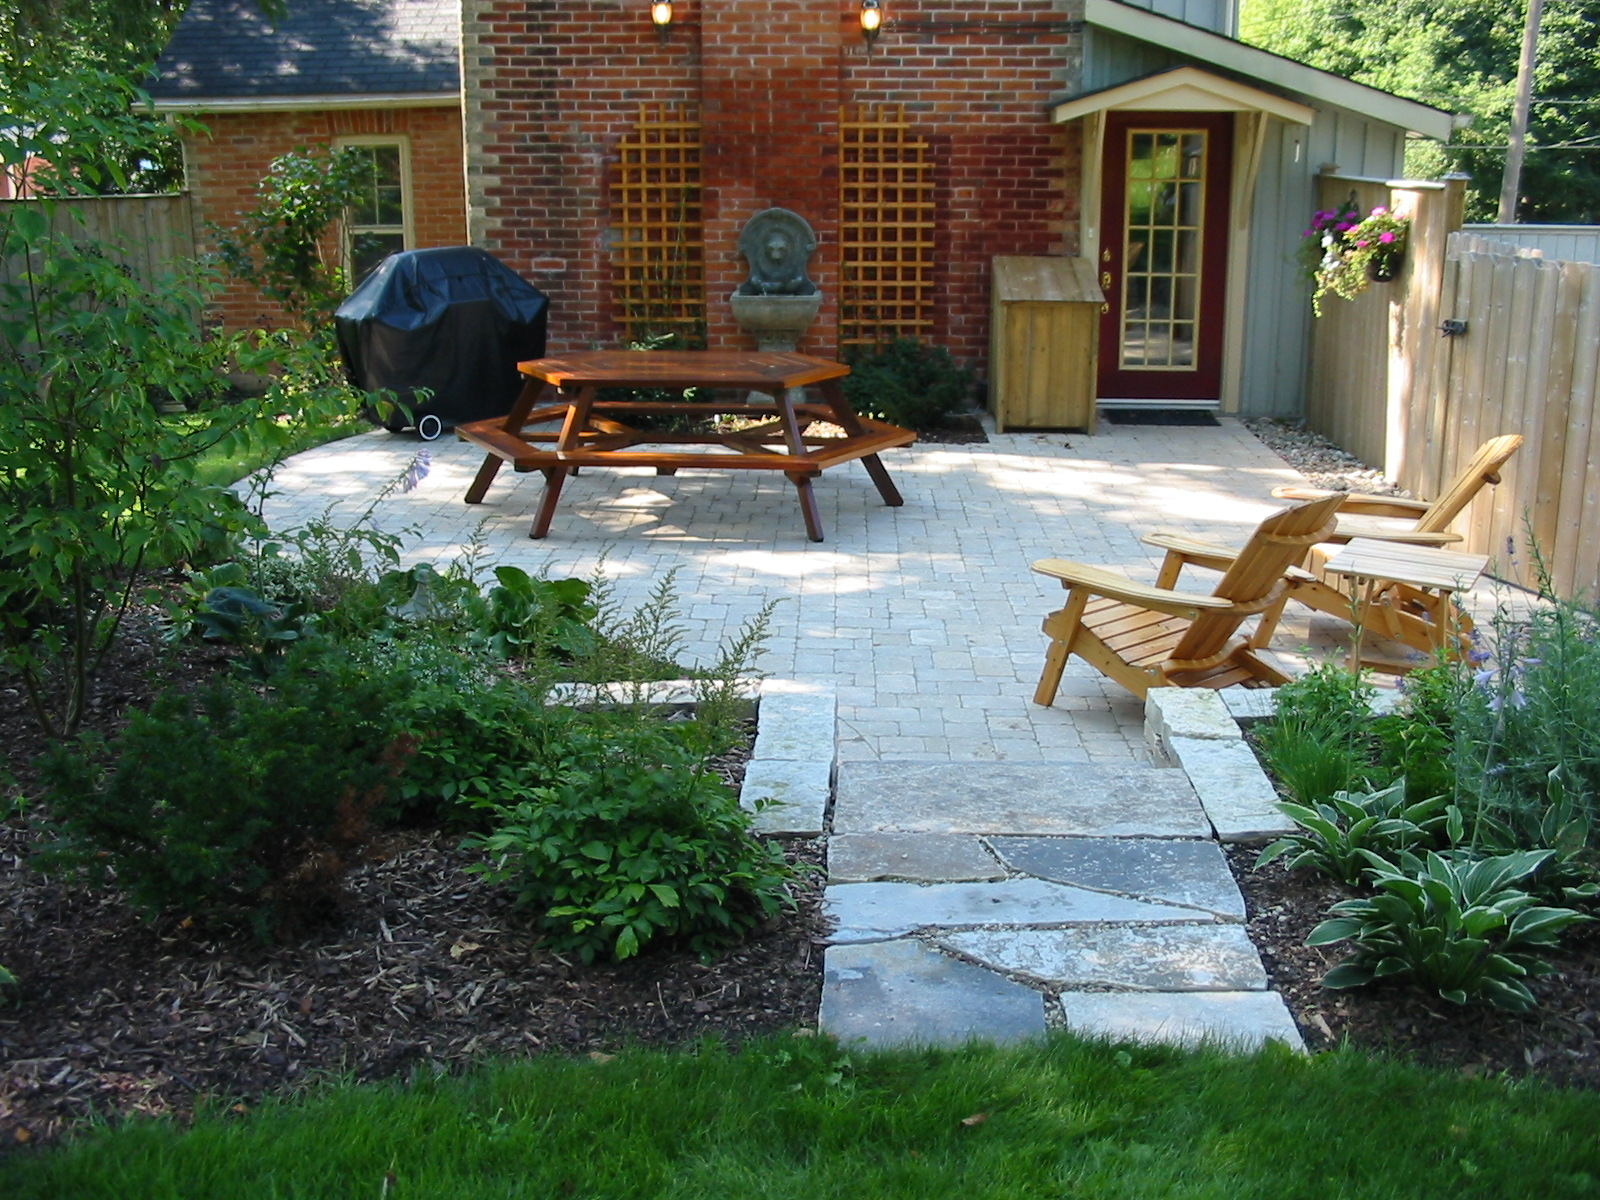 Patio Landscaping Of Patios Design Patio Walkway Cobble Stone Robin Aggus